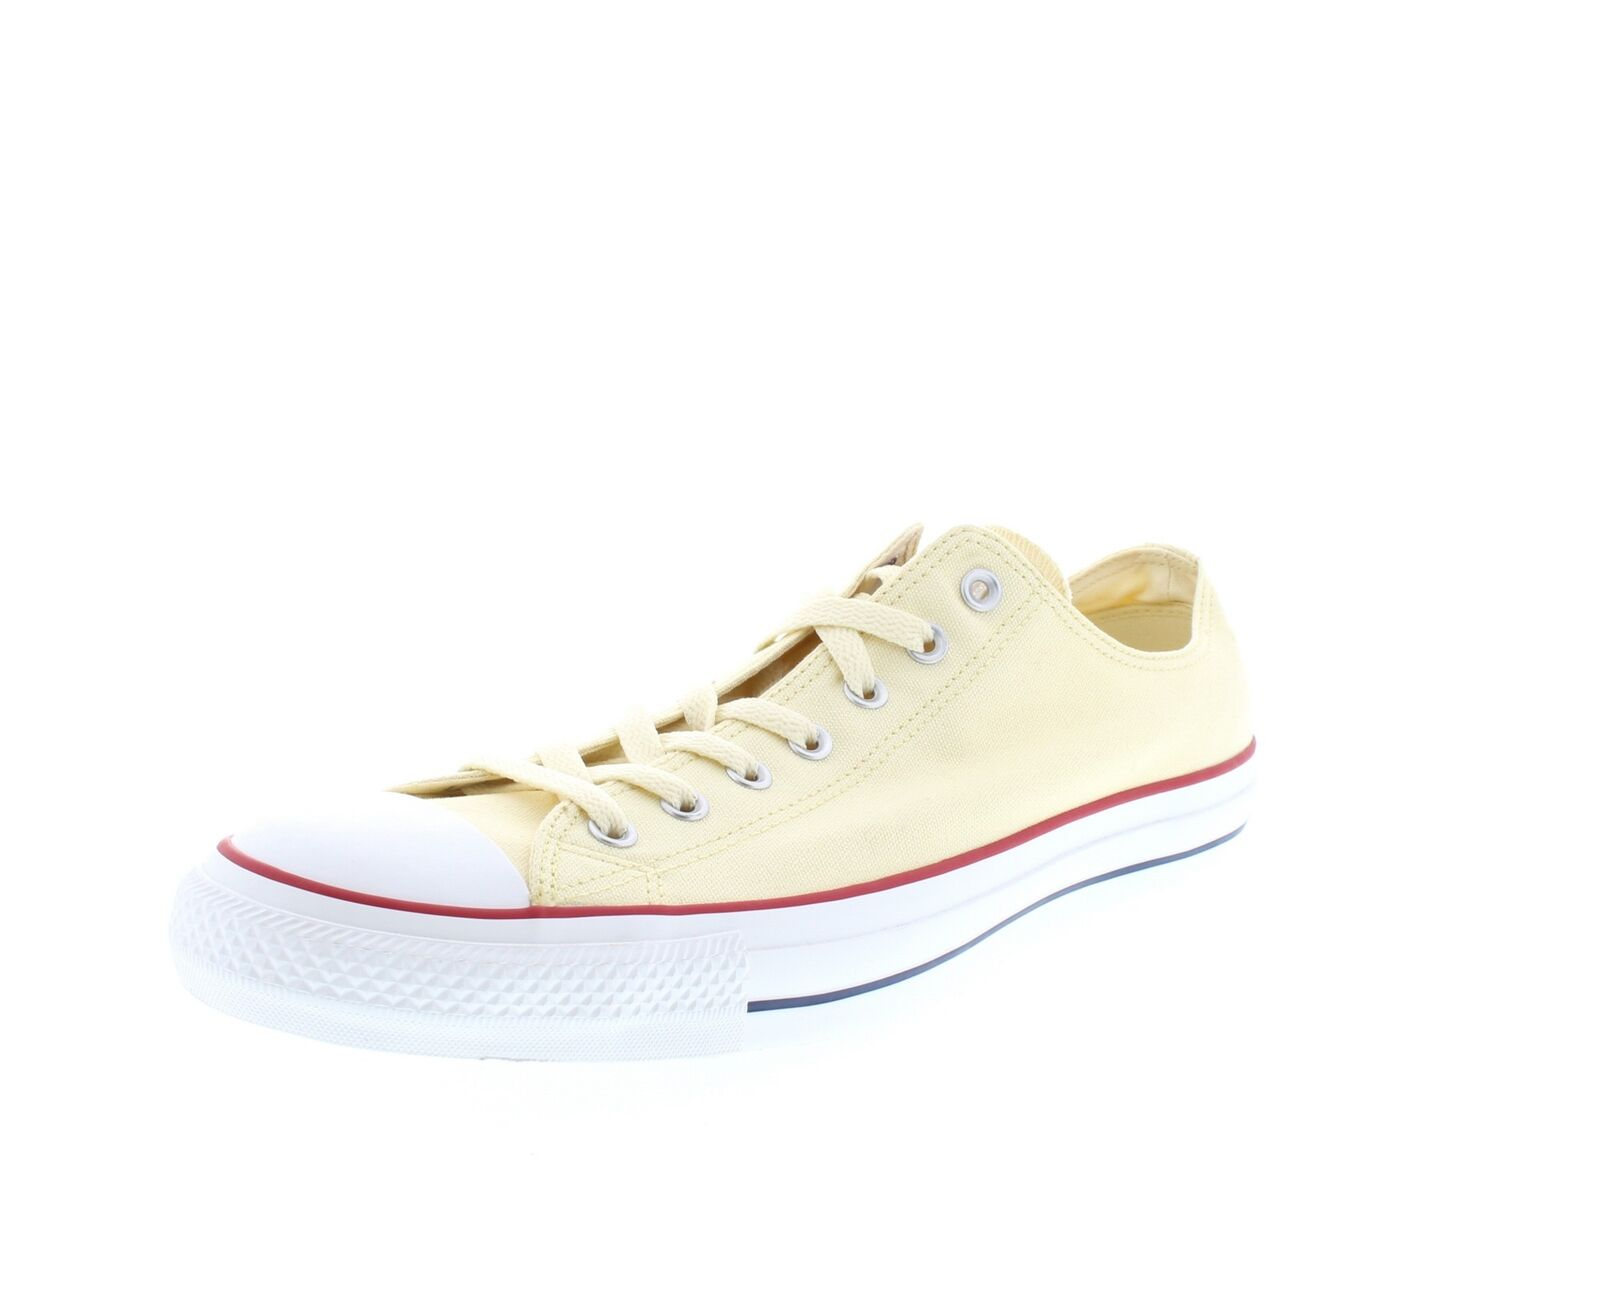 Converse en Tallas Grandes - All Star Ox 9165 Natural blanco